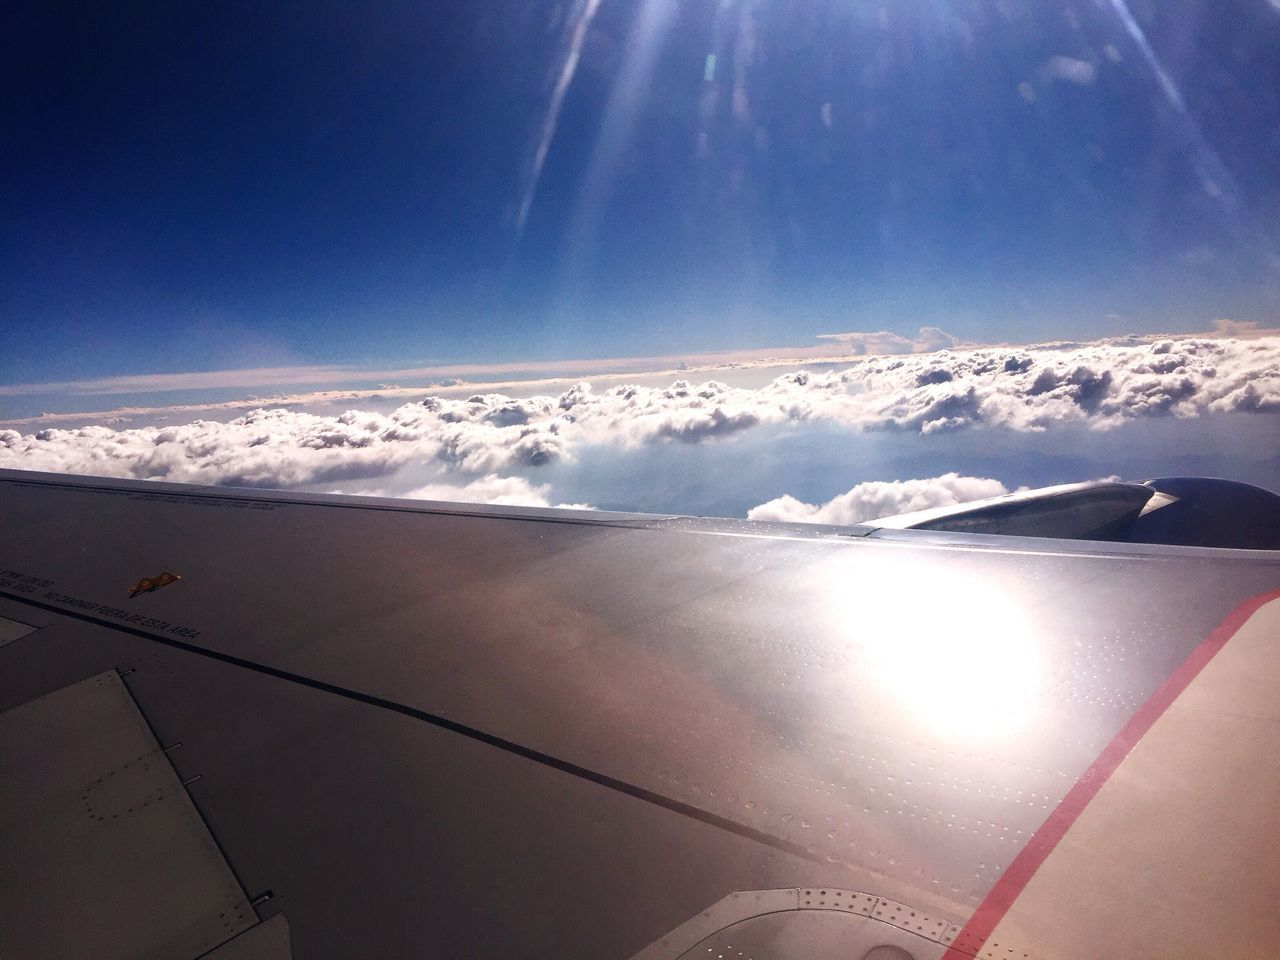 airplane, beauty in nature, aerial view, transportation, sky, nature, air vehicle, no people, journey, scenics, airplane wing, aircraft wing, sunlight, cloud - sky, flying, tranquility, day, travel, tranquil scene, mode of transport, outdoors, blue, vehicle part